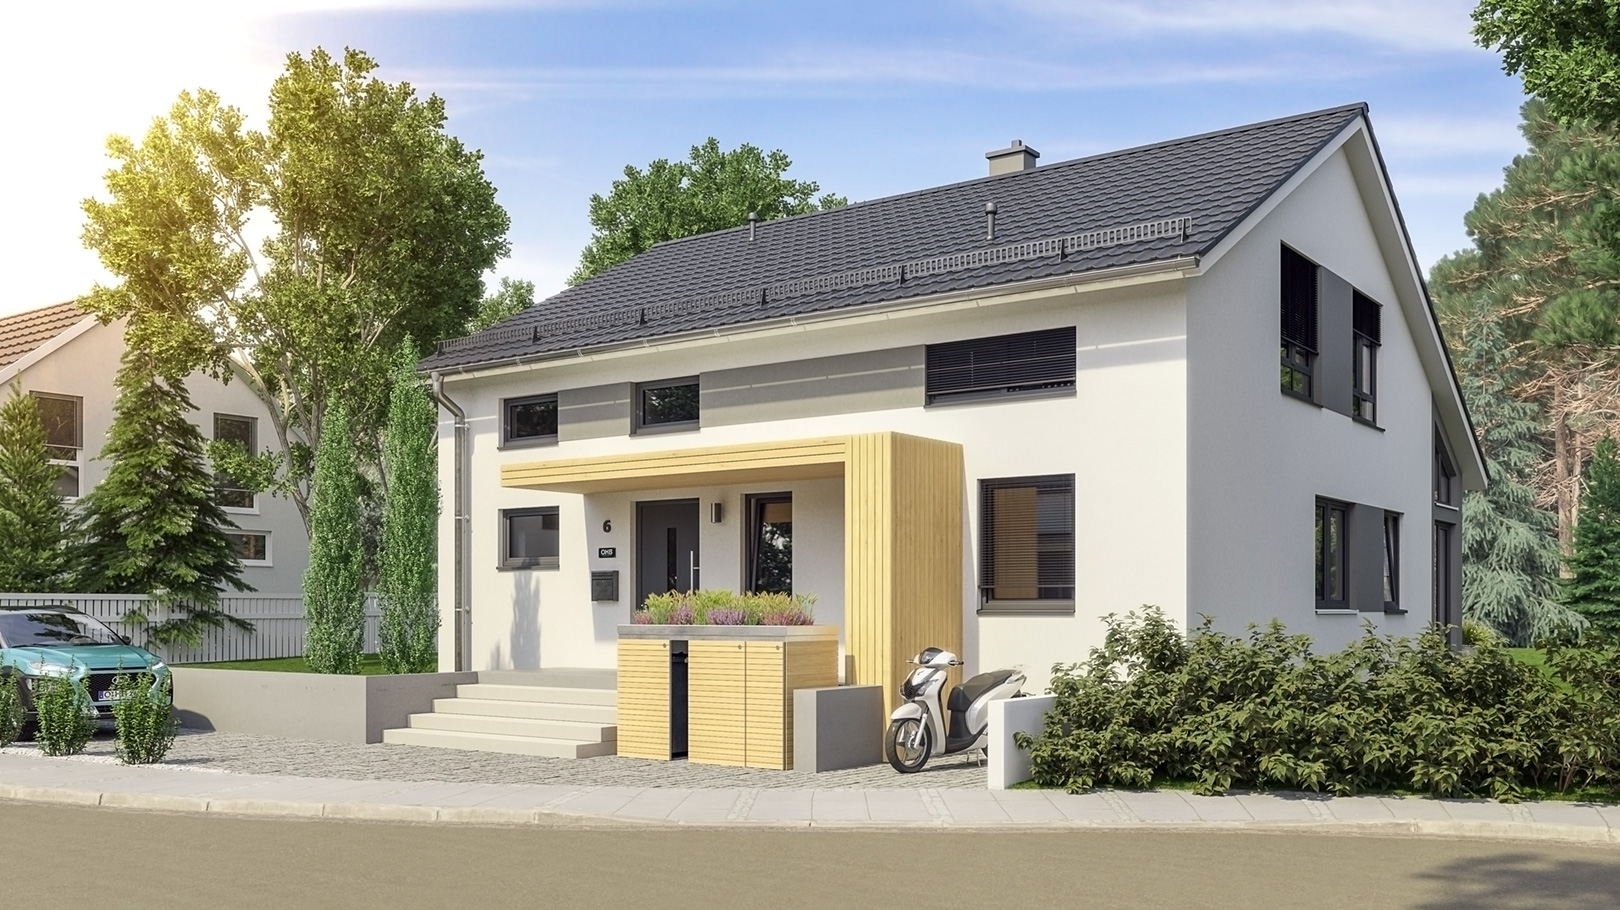 Haus-Idee-Bad Berka